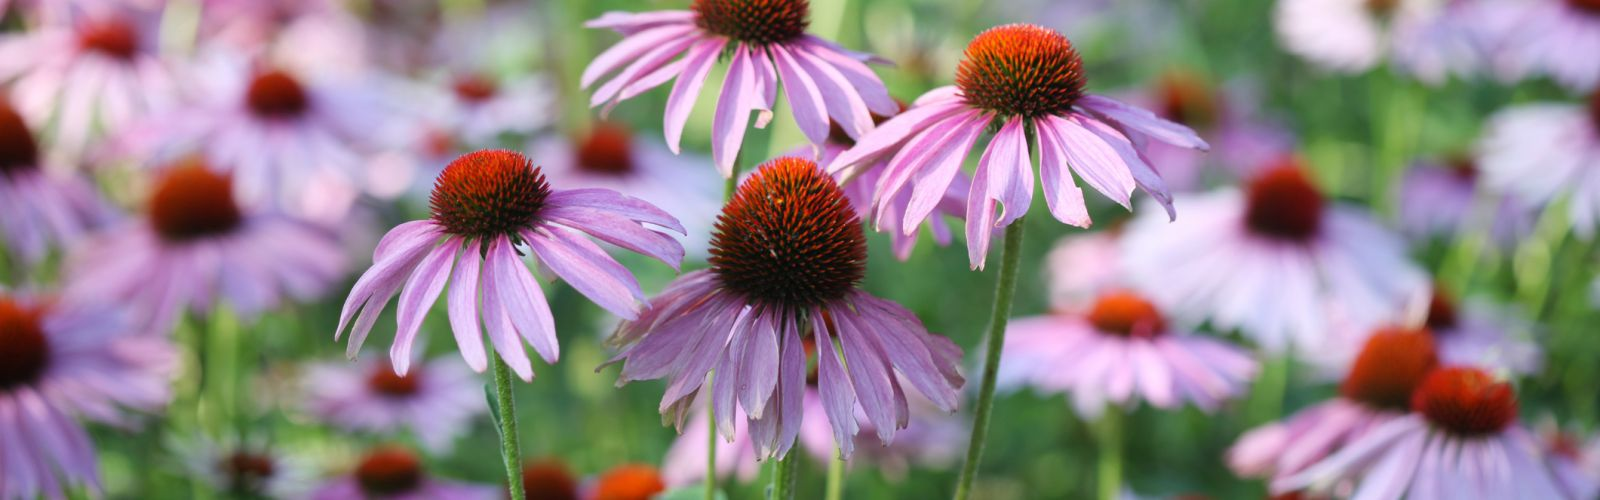 purple echinacea flowers blooming